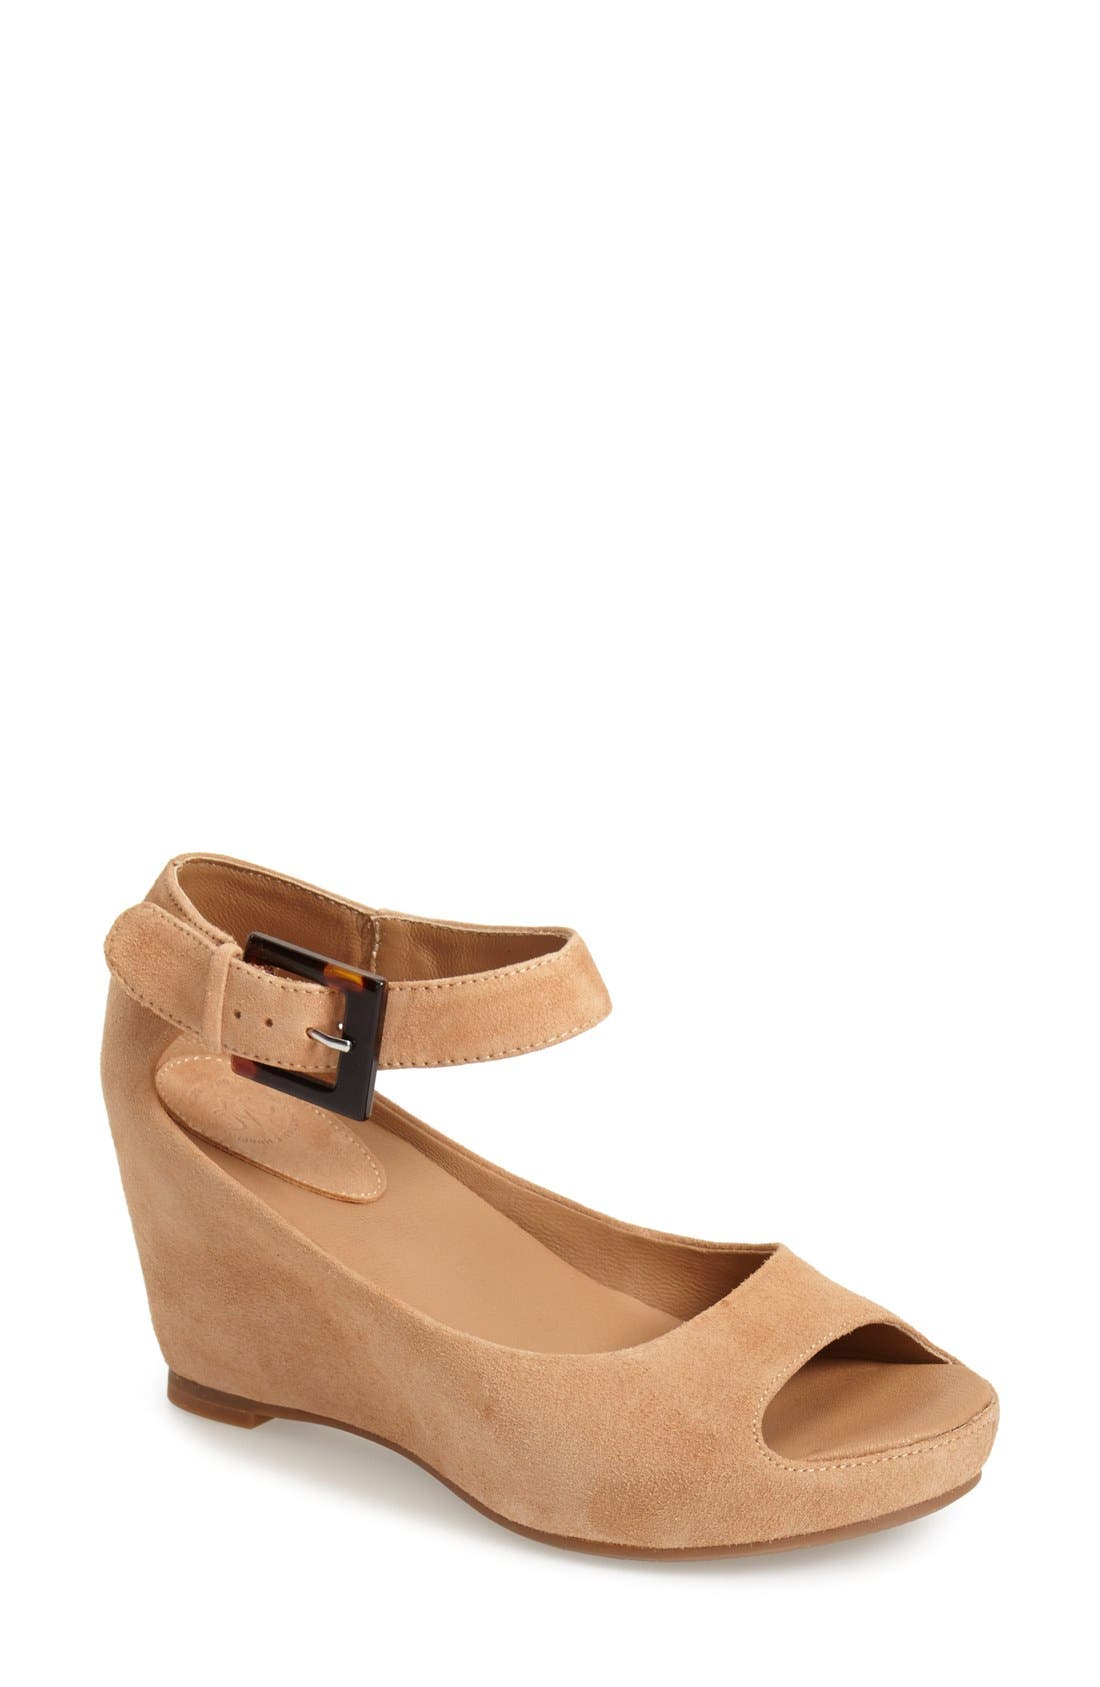 Johnston & Murphy 'Tricia' Ankle Strap Sandal